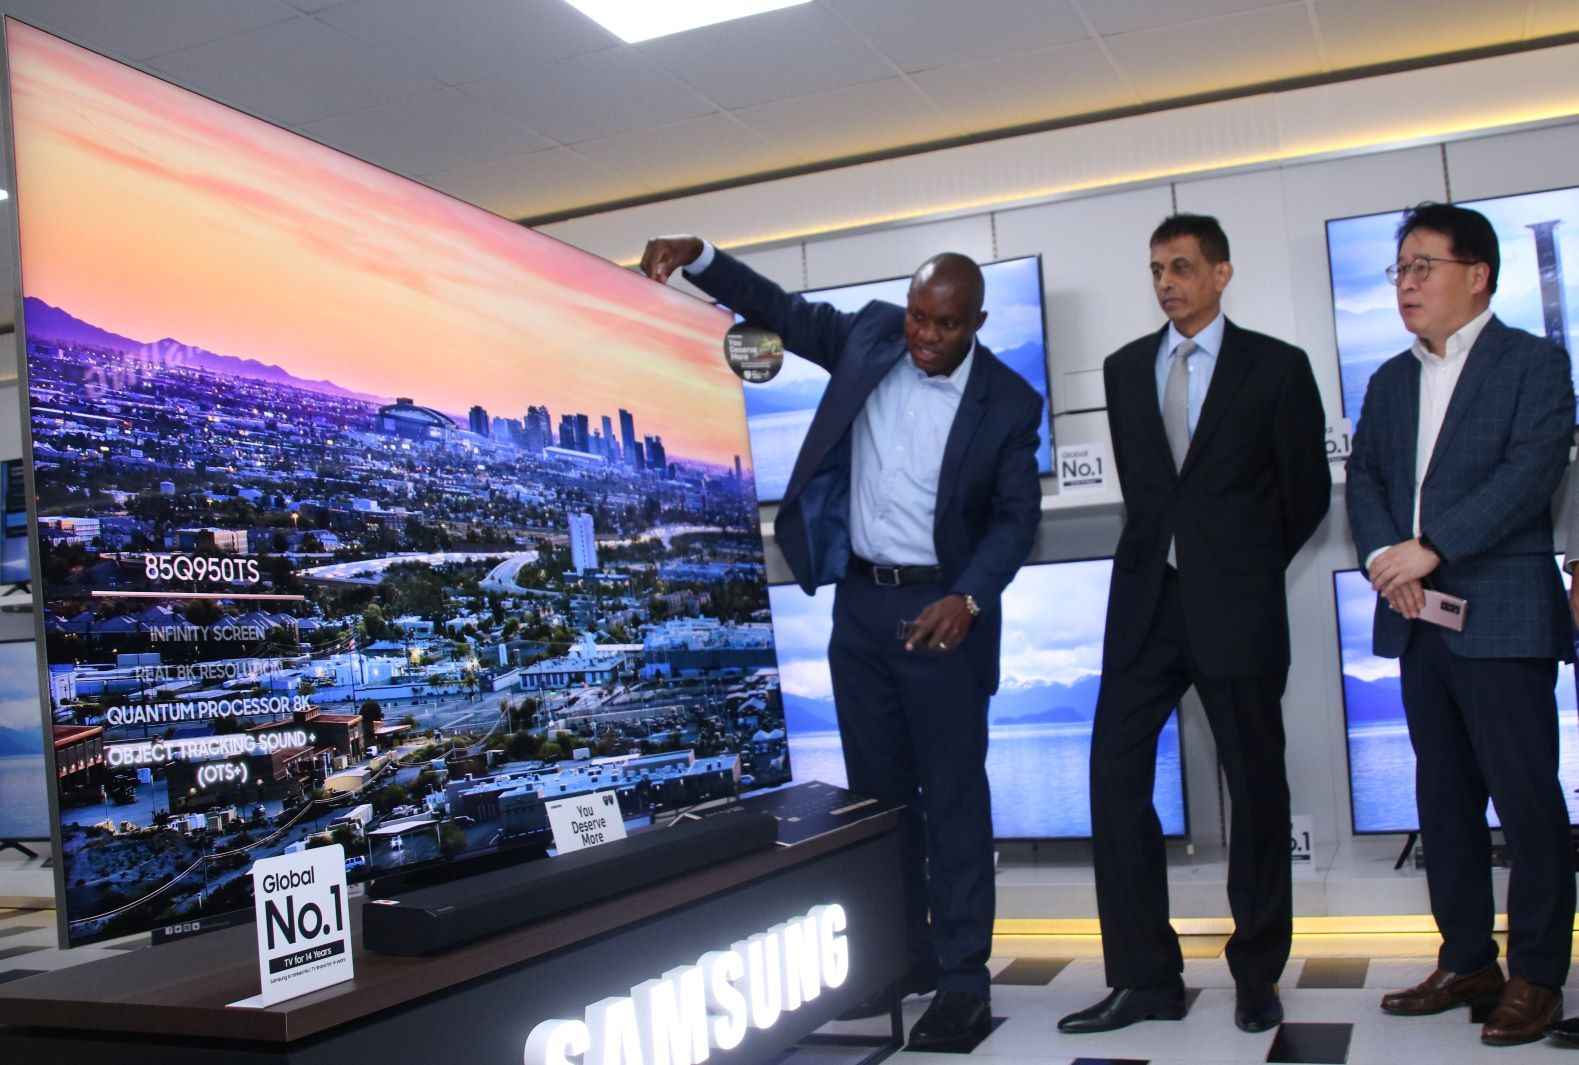 SAMSUNG LAUNCHES NEW RANGE OF SMART, INTERNET-CONNECTED CONSUMER ELECTRONICS IN EAST AFRICA